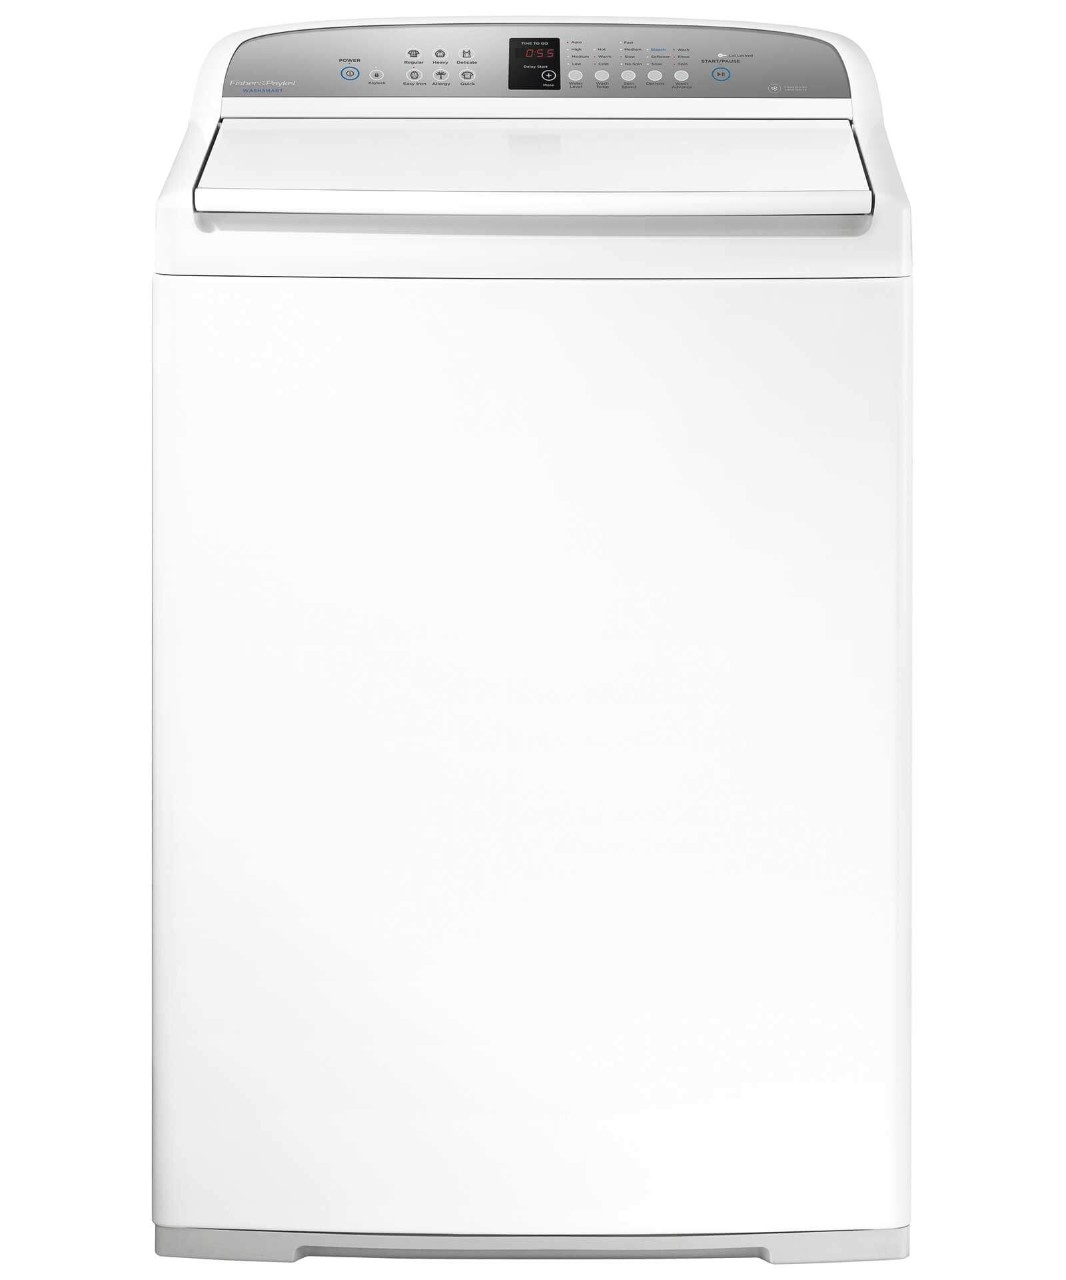 fisher and paykel wash smart top load washer white wa3927g1rochester mn. Black Bedroom Furniture Sets. Home Design Ideas